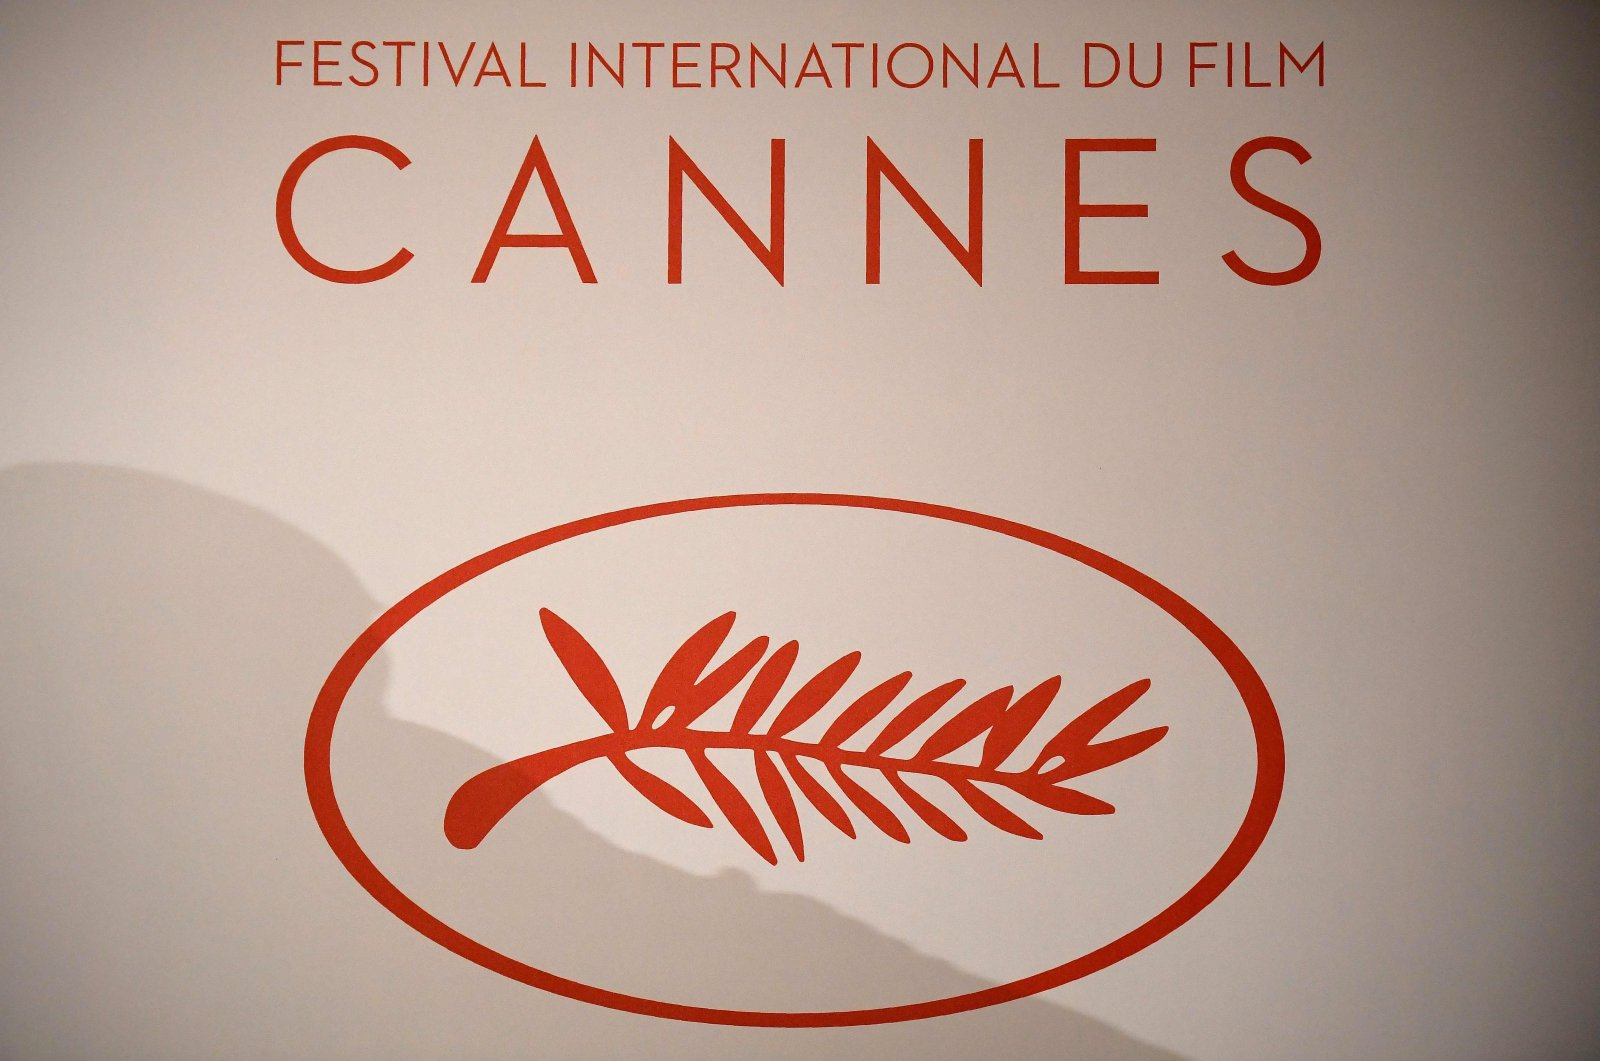 The logo of the International Cannes Film Festival is pictured during a press conference, in Paris, France, April 13, 2017. (AFP Photo)